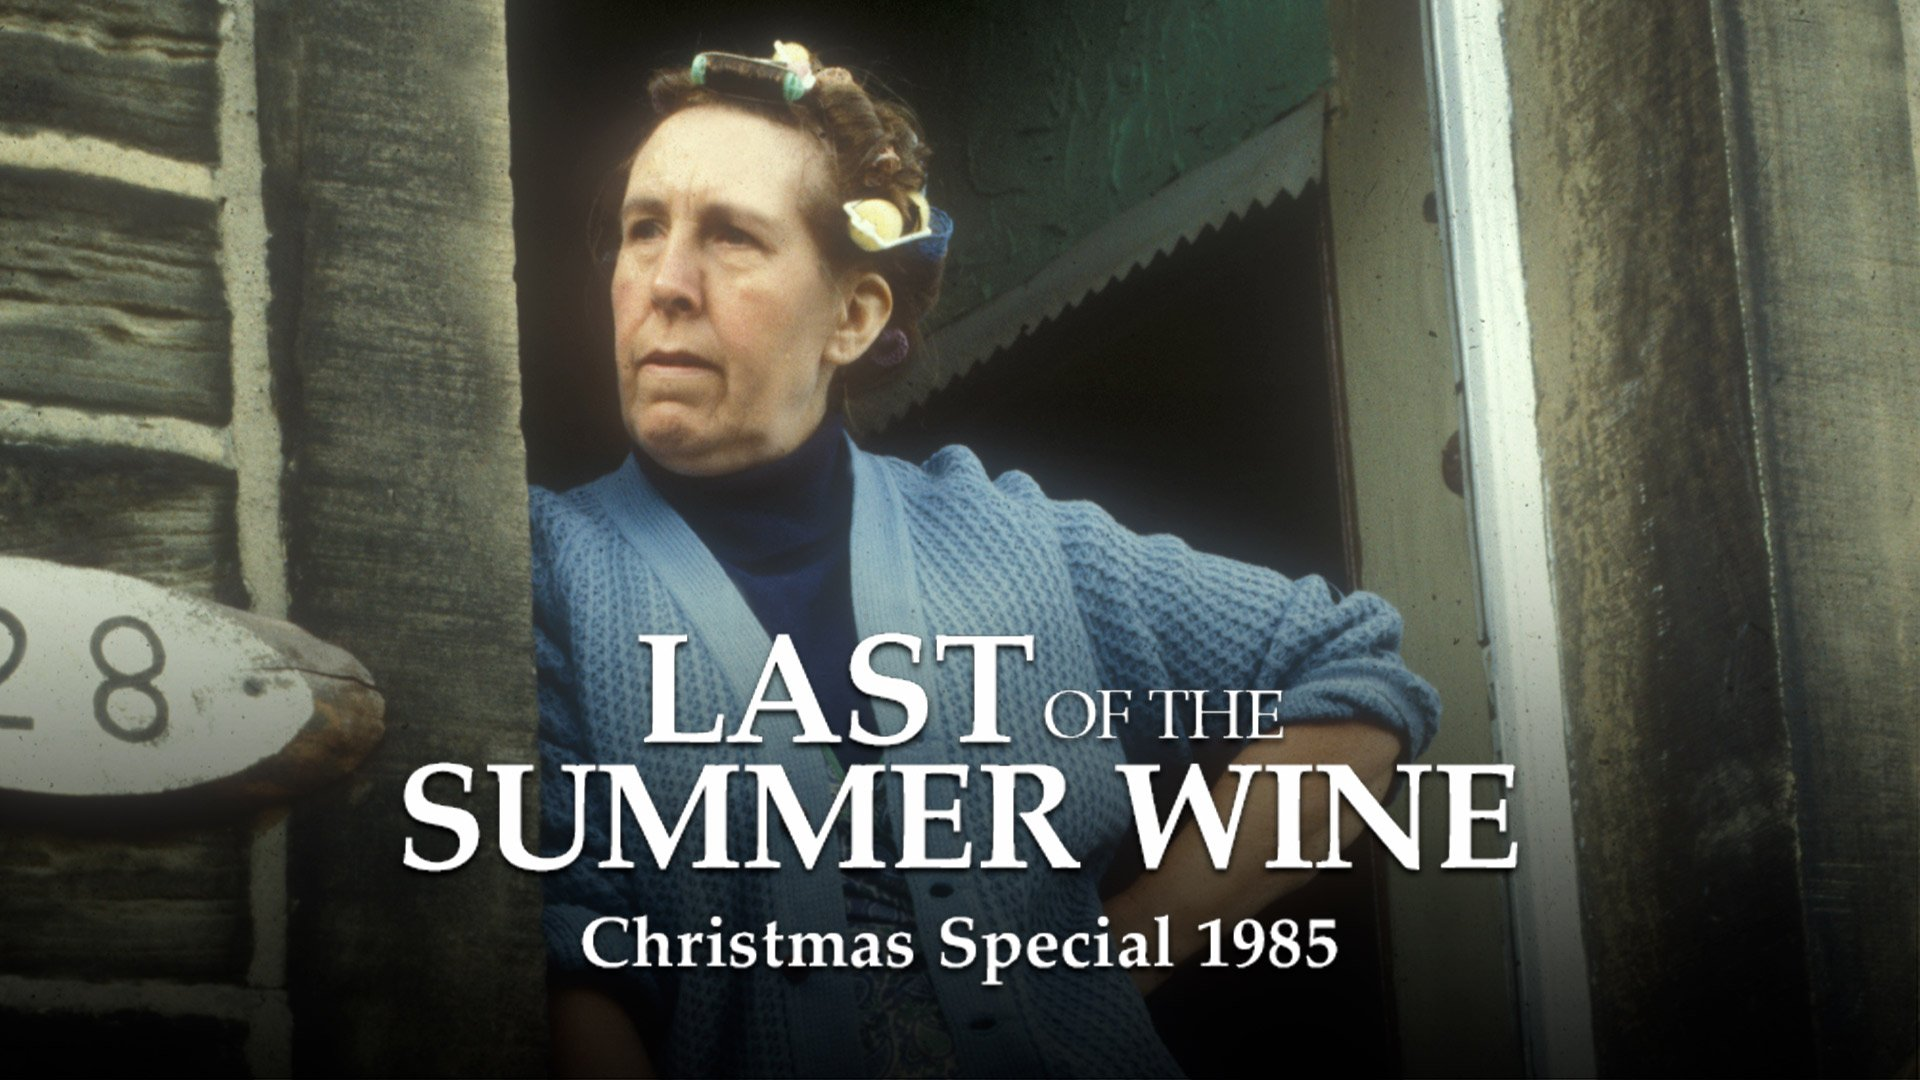 Last of The Summer Wine Christmas Special 1985: Uncles of the Bride on BritBox UK